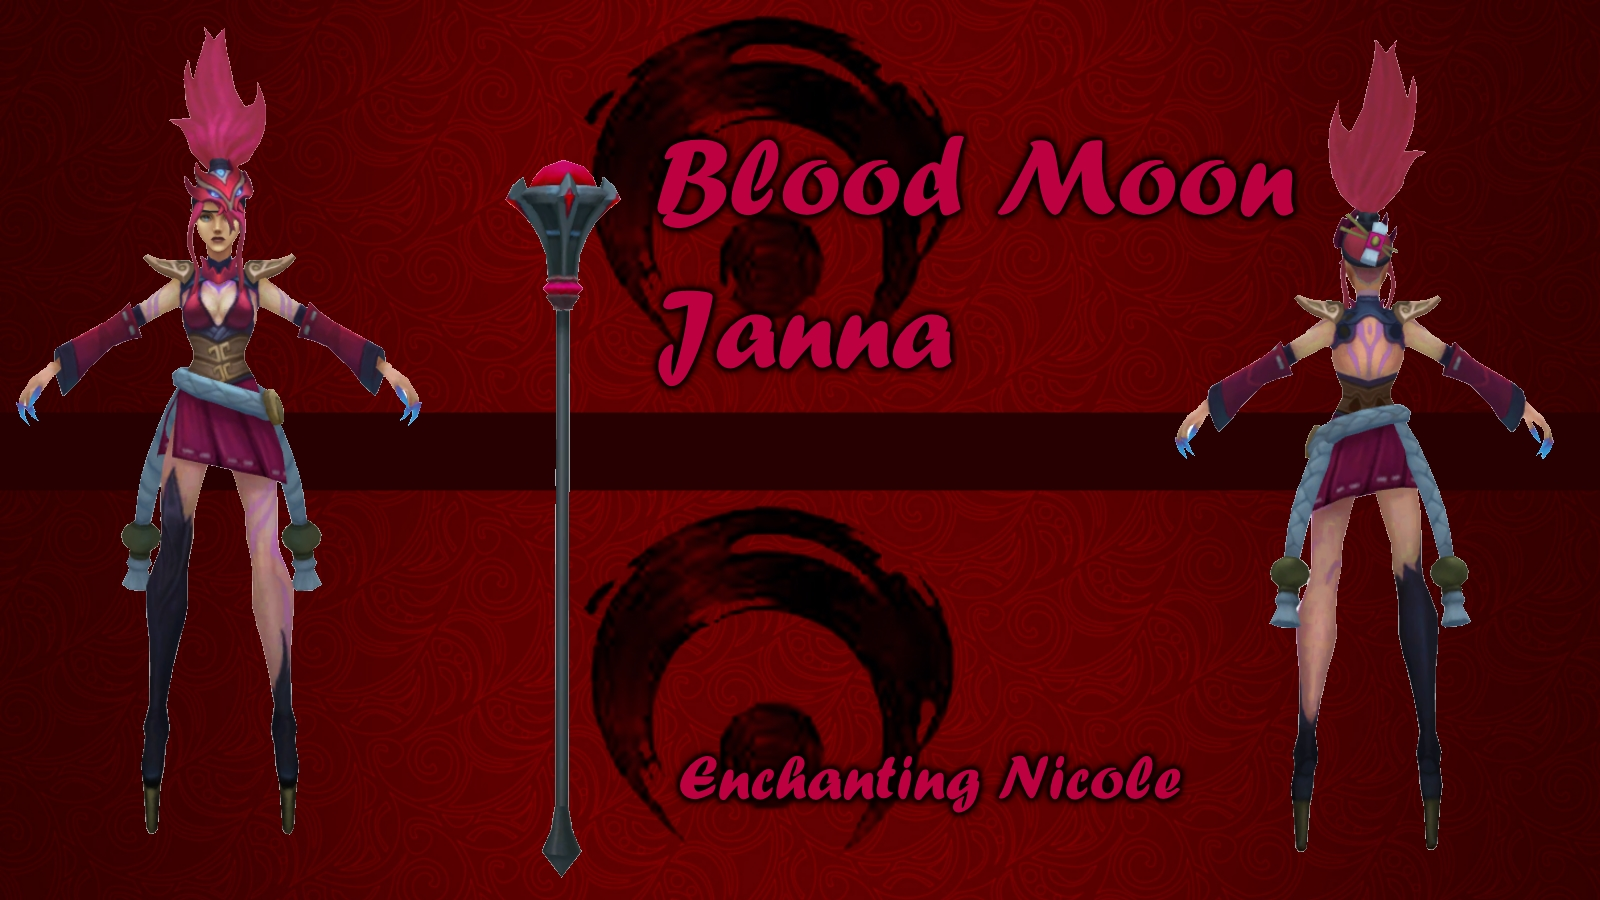 Blood Moon Janna